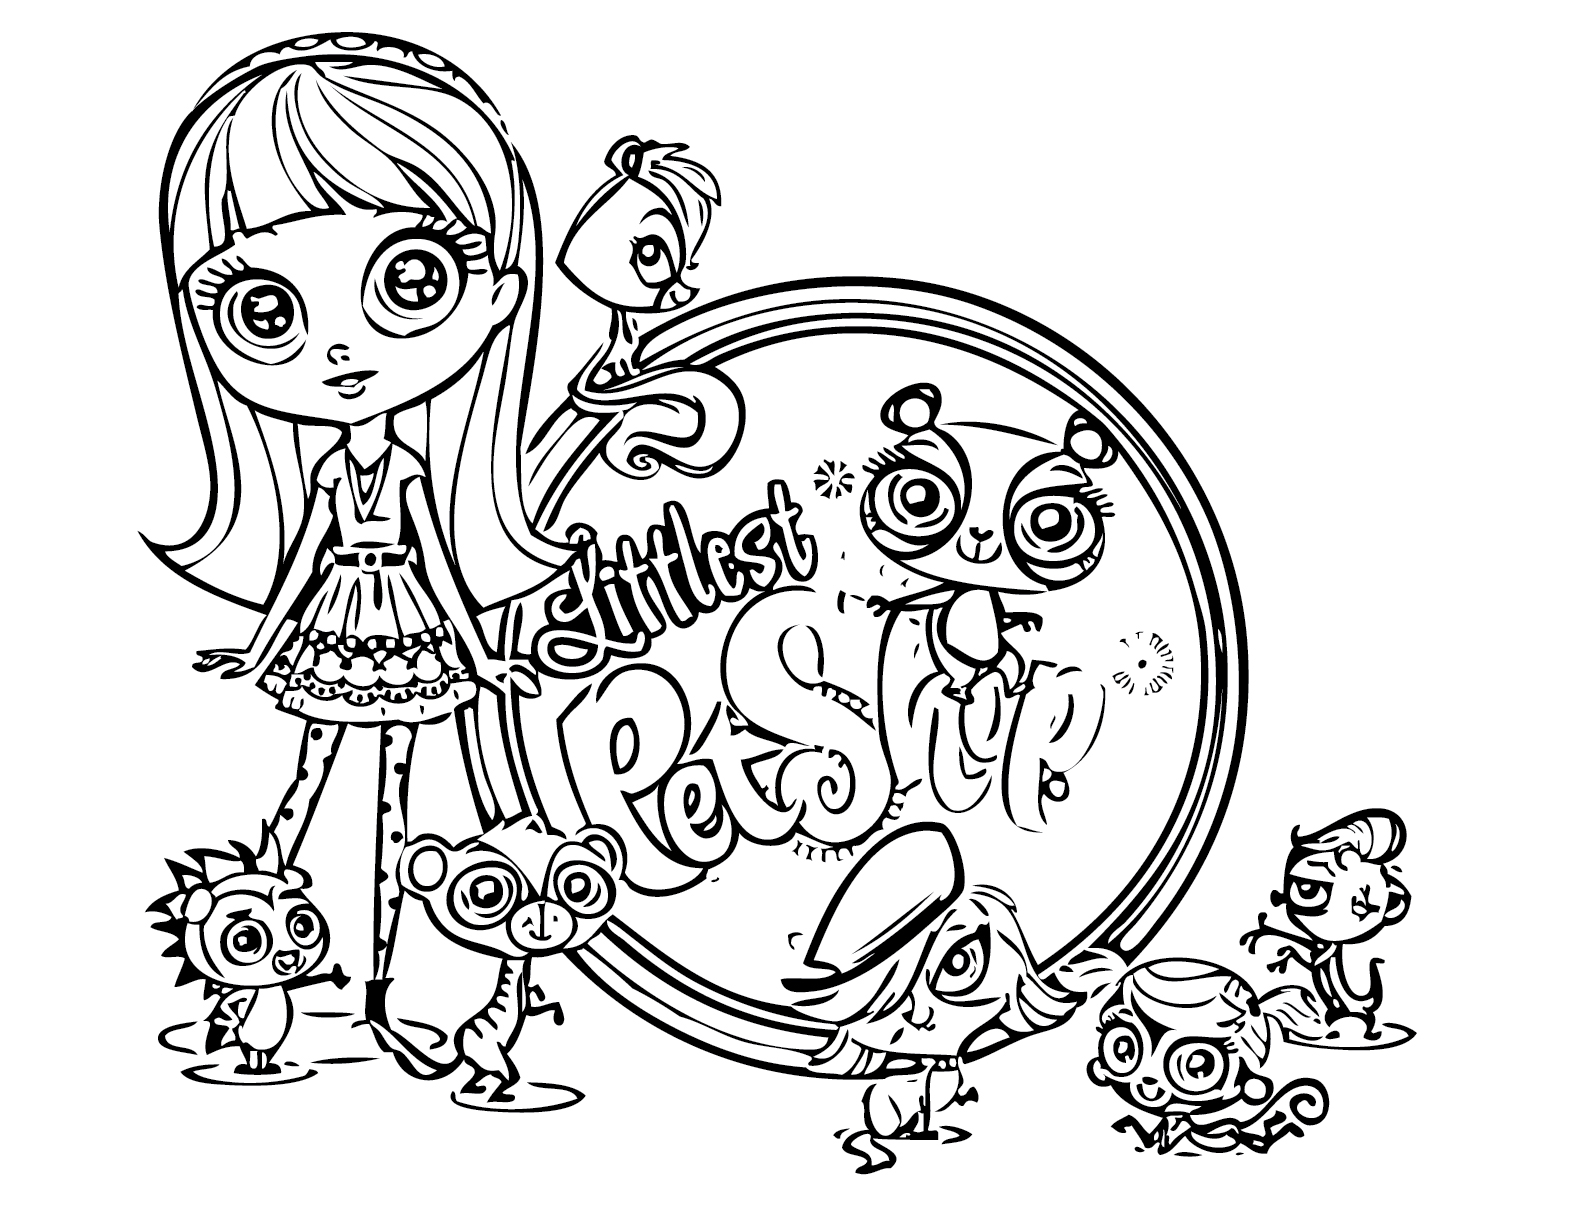 littlest pet shop coloring pages littlest pet shop coloring pages Man Of Steel Logo Coloring Pages